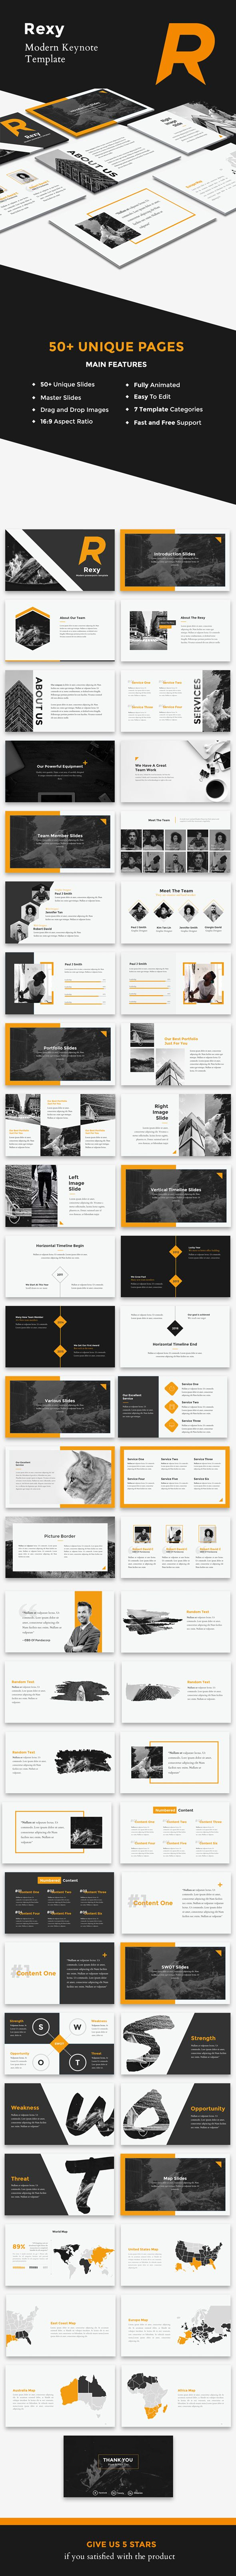 rexy c modern keynote template features 50 unique creative slides